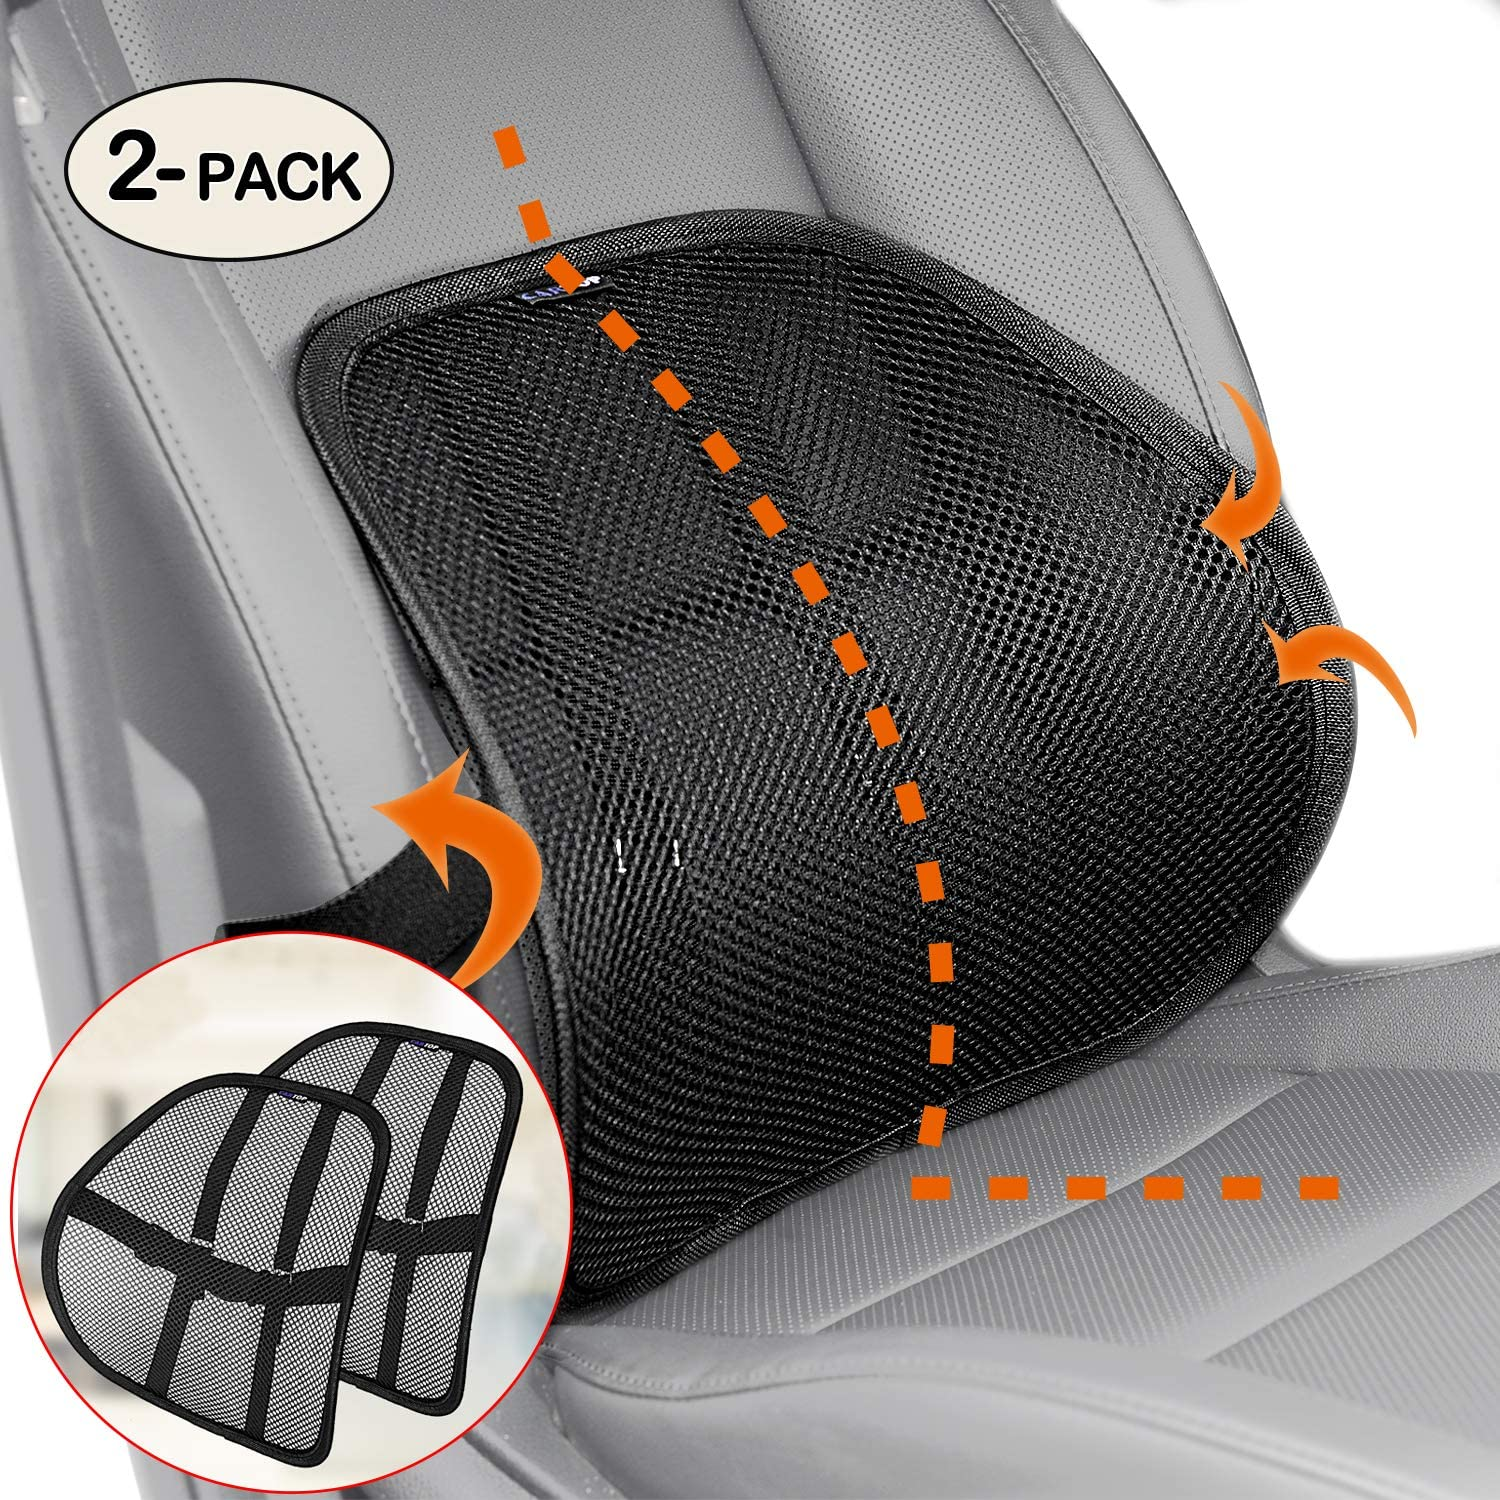 Lumbar Support, Cartop Mesh Back Cushion 2 Pack Lower Back Support, Double Mesh Lumbar Cushion Air Flow Breathable Back Support Cushion - Suitable for ...